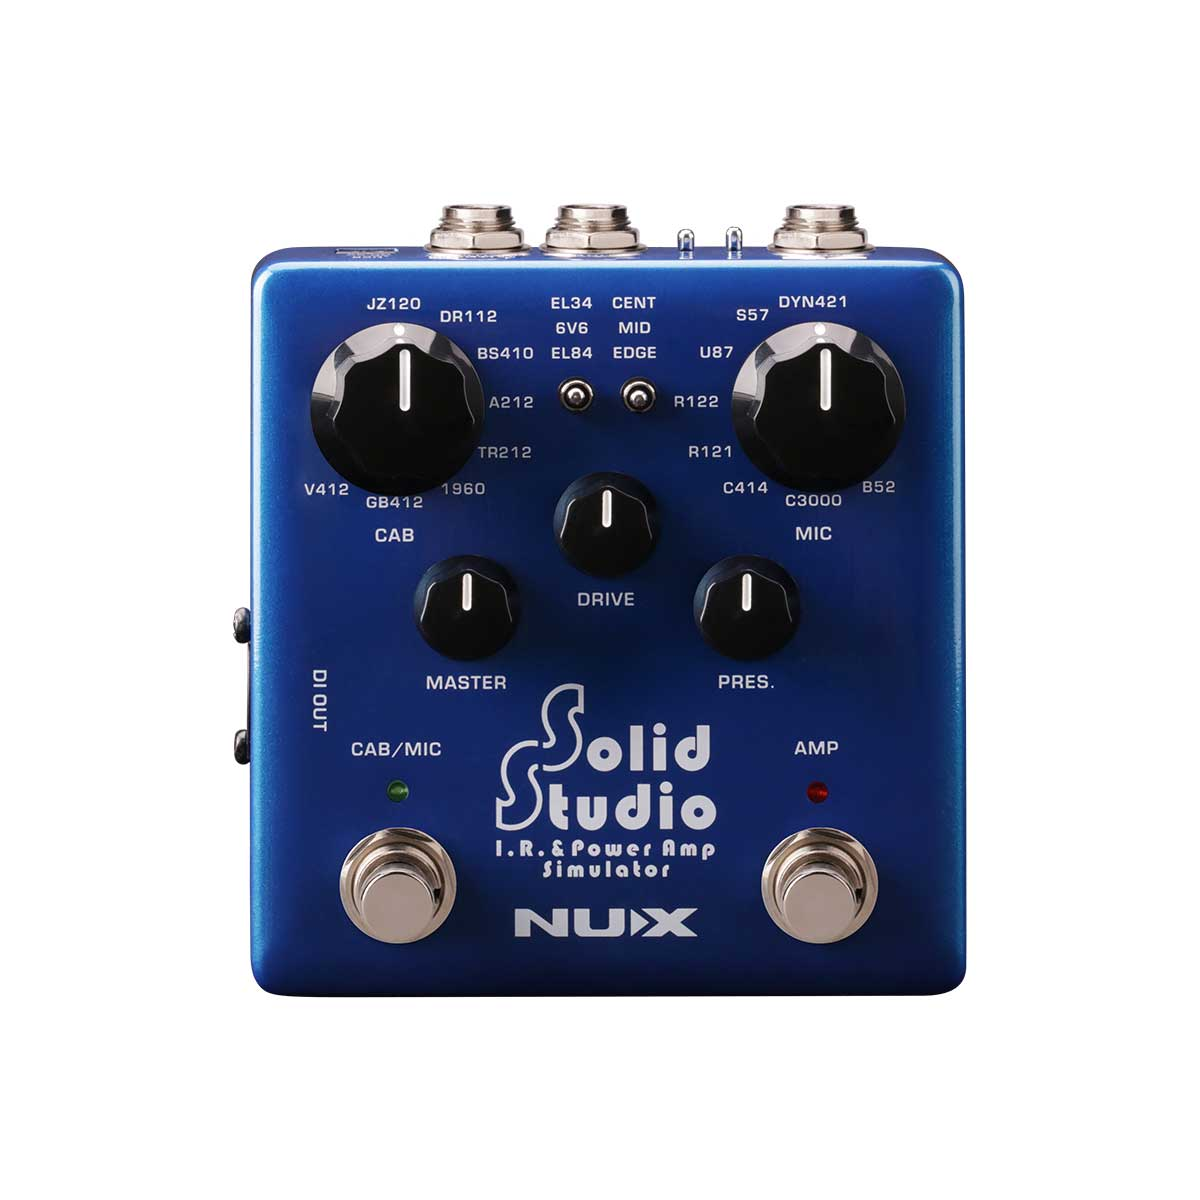 Nux Solid Studio I.R. & power amp simulator